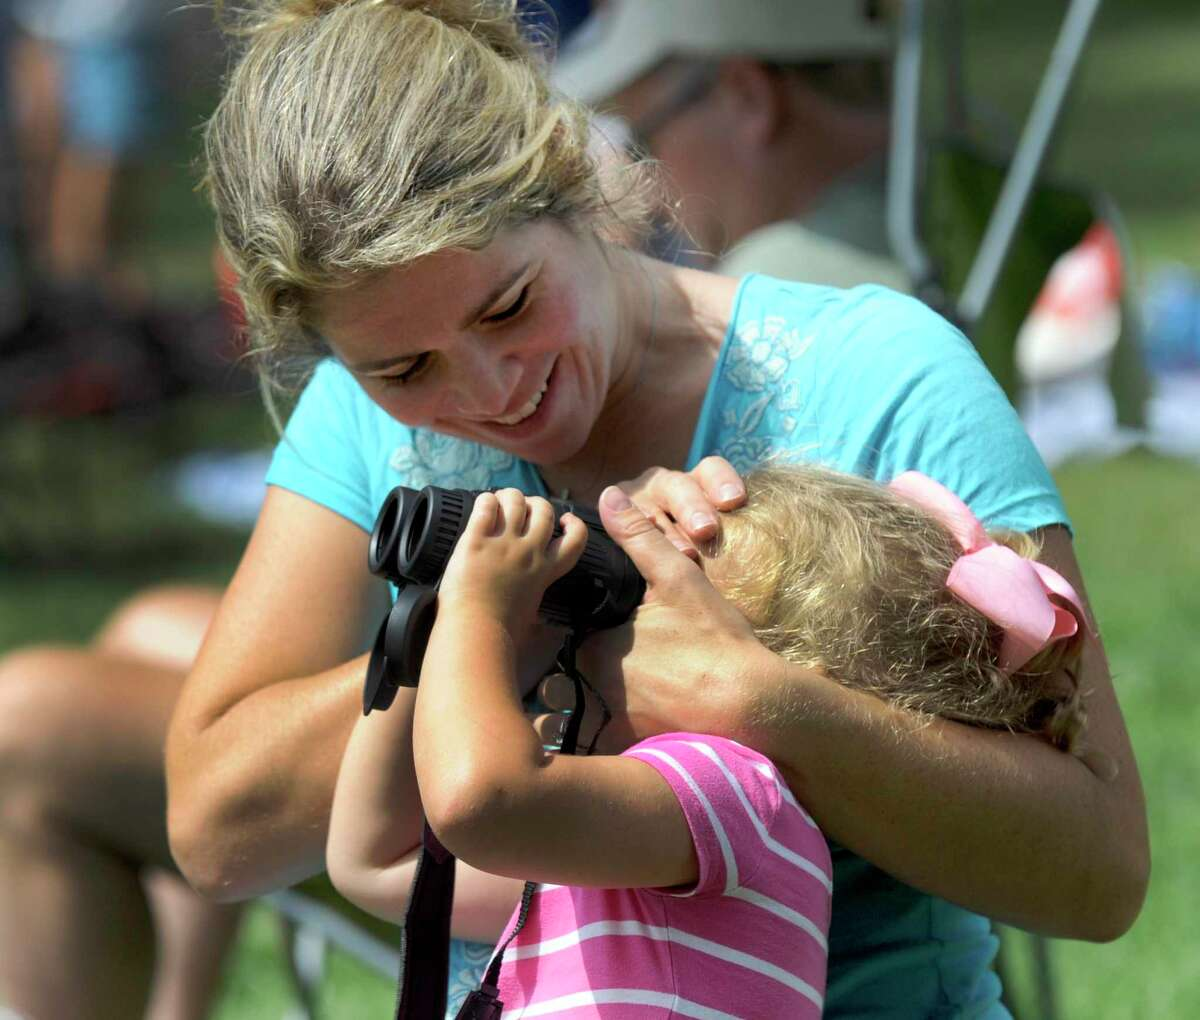 Elise Sawicki, of Wilton, helps her daughter Charlotte, 2, use SUNoculars, to safely view the solar eclipse at Ballard Park in Ridgefield Monday, August 21, 2017.